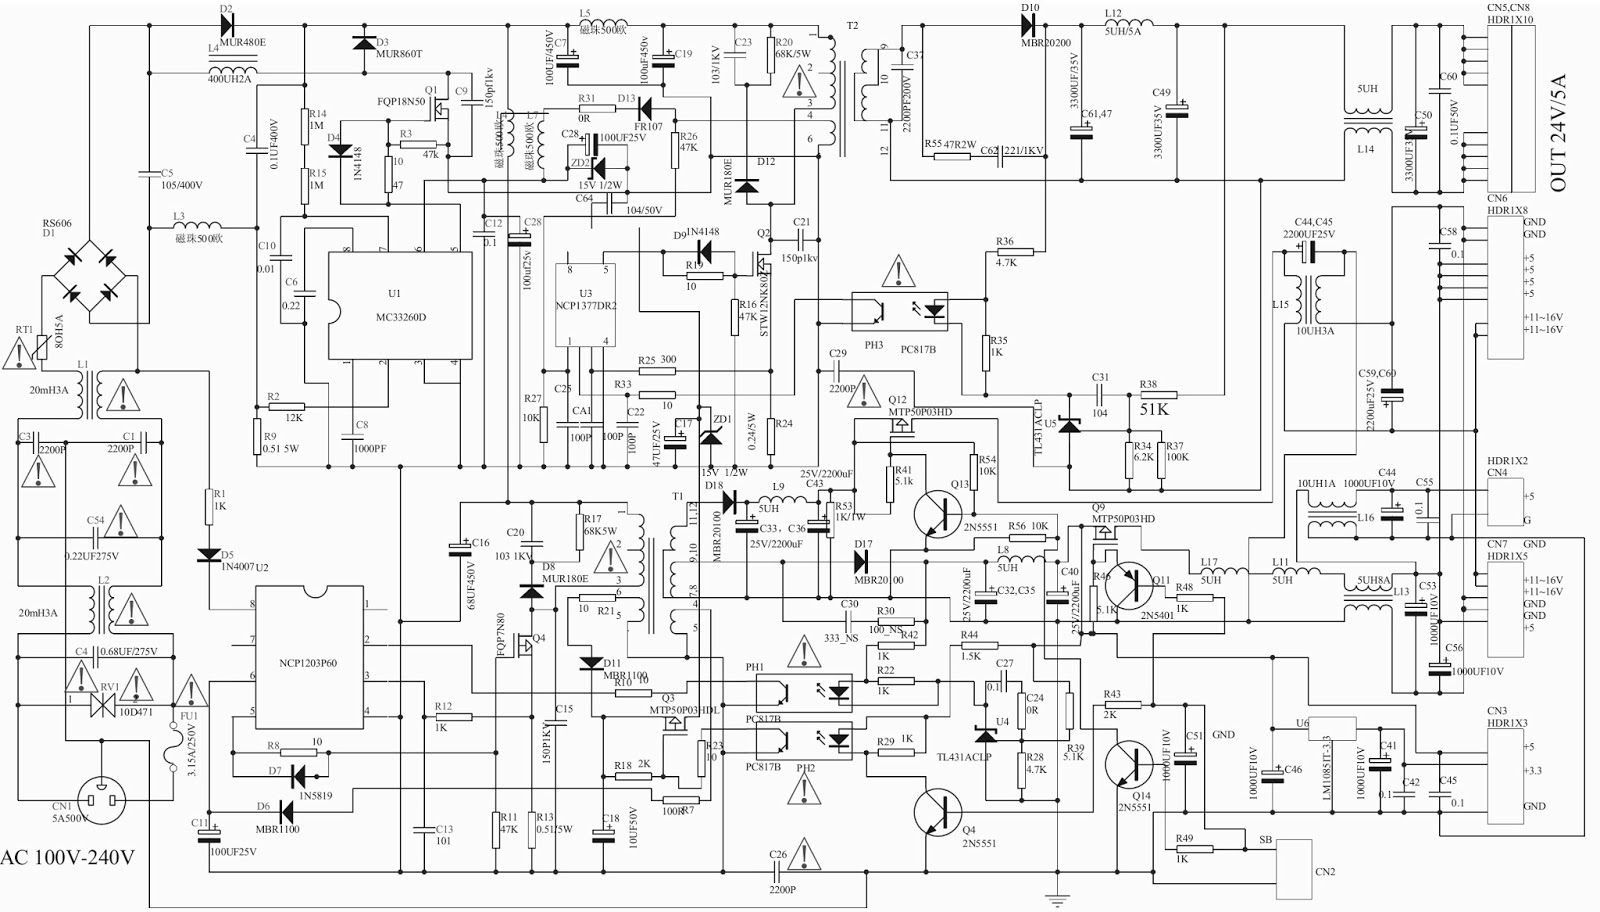 smps circuit diagram the wiring diagram akai lta 27a901 lcd tv main power supply smps circuit